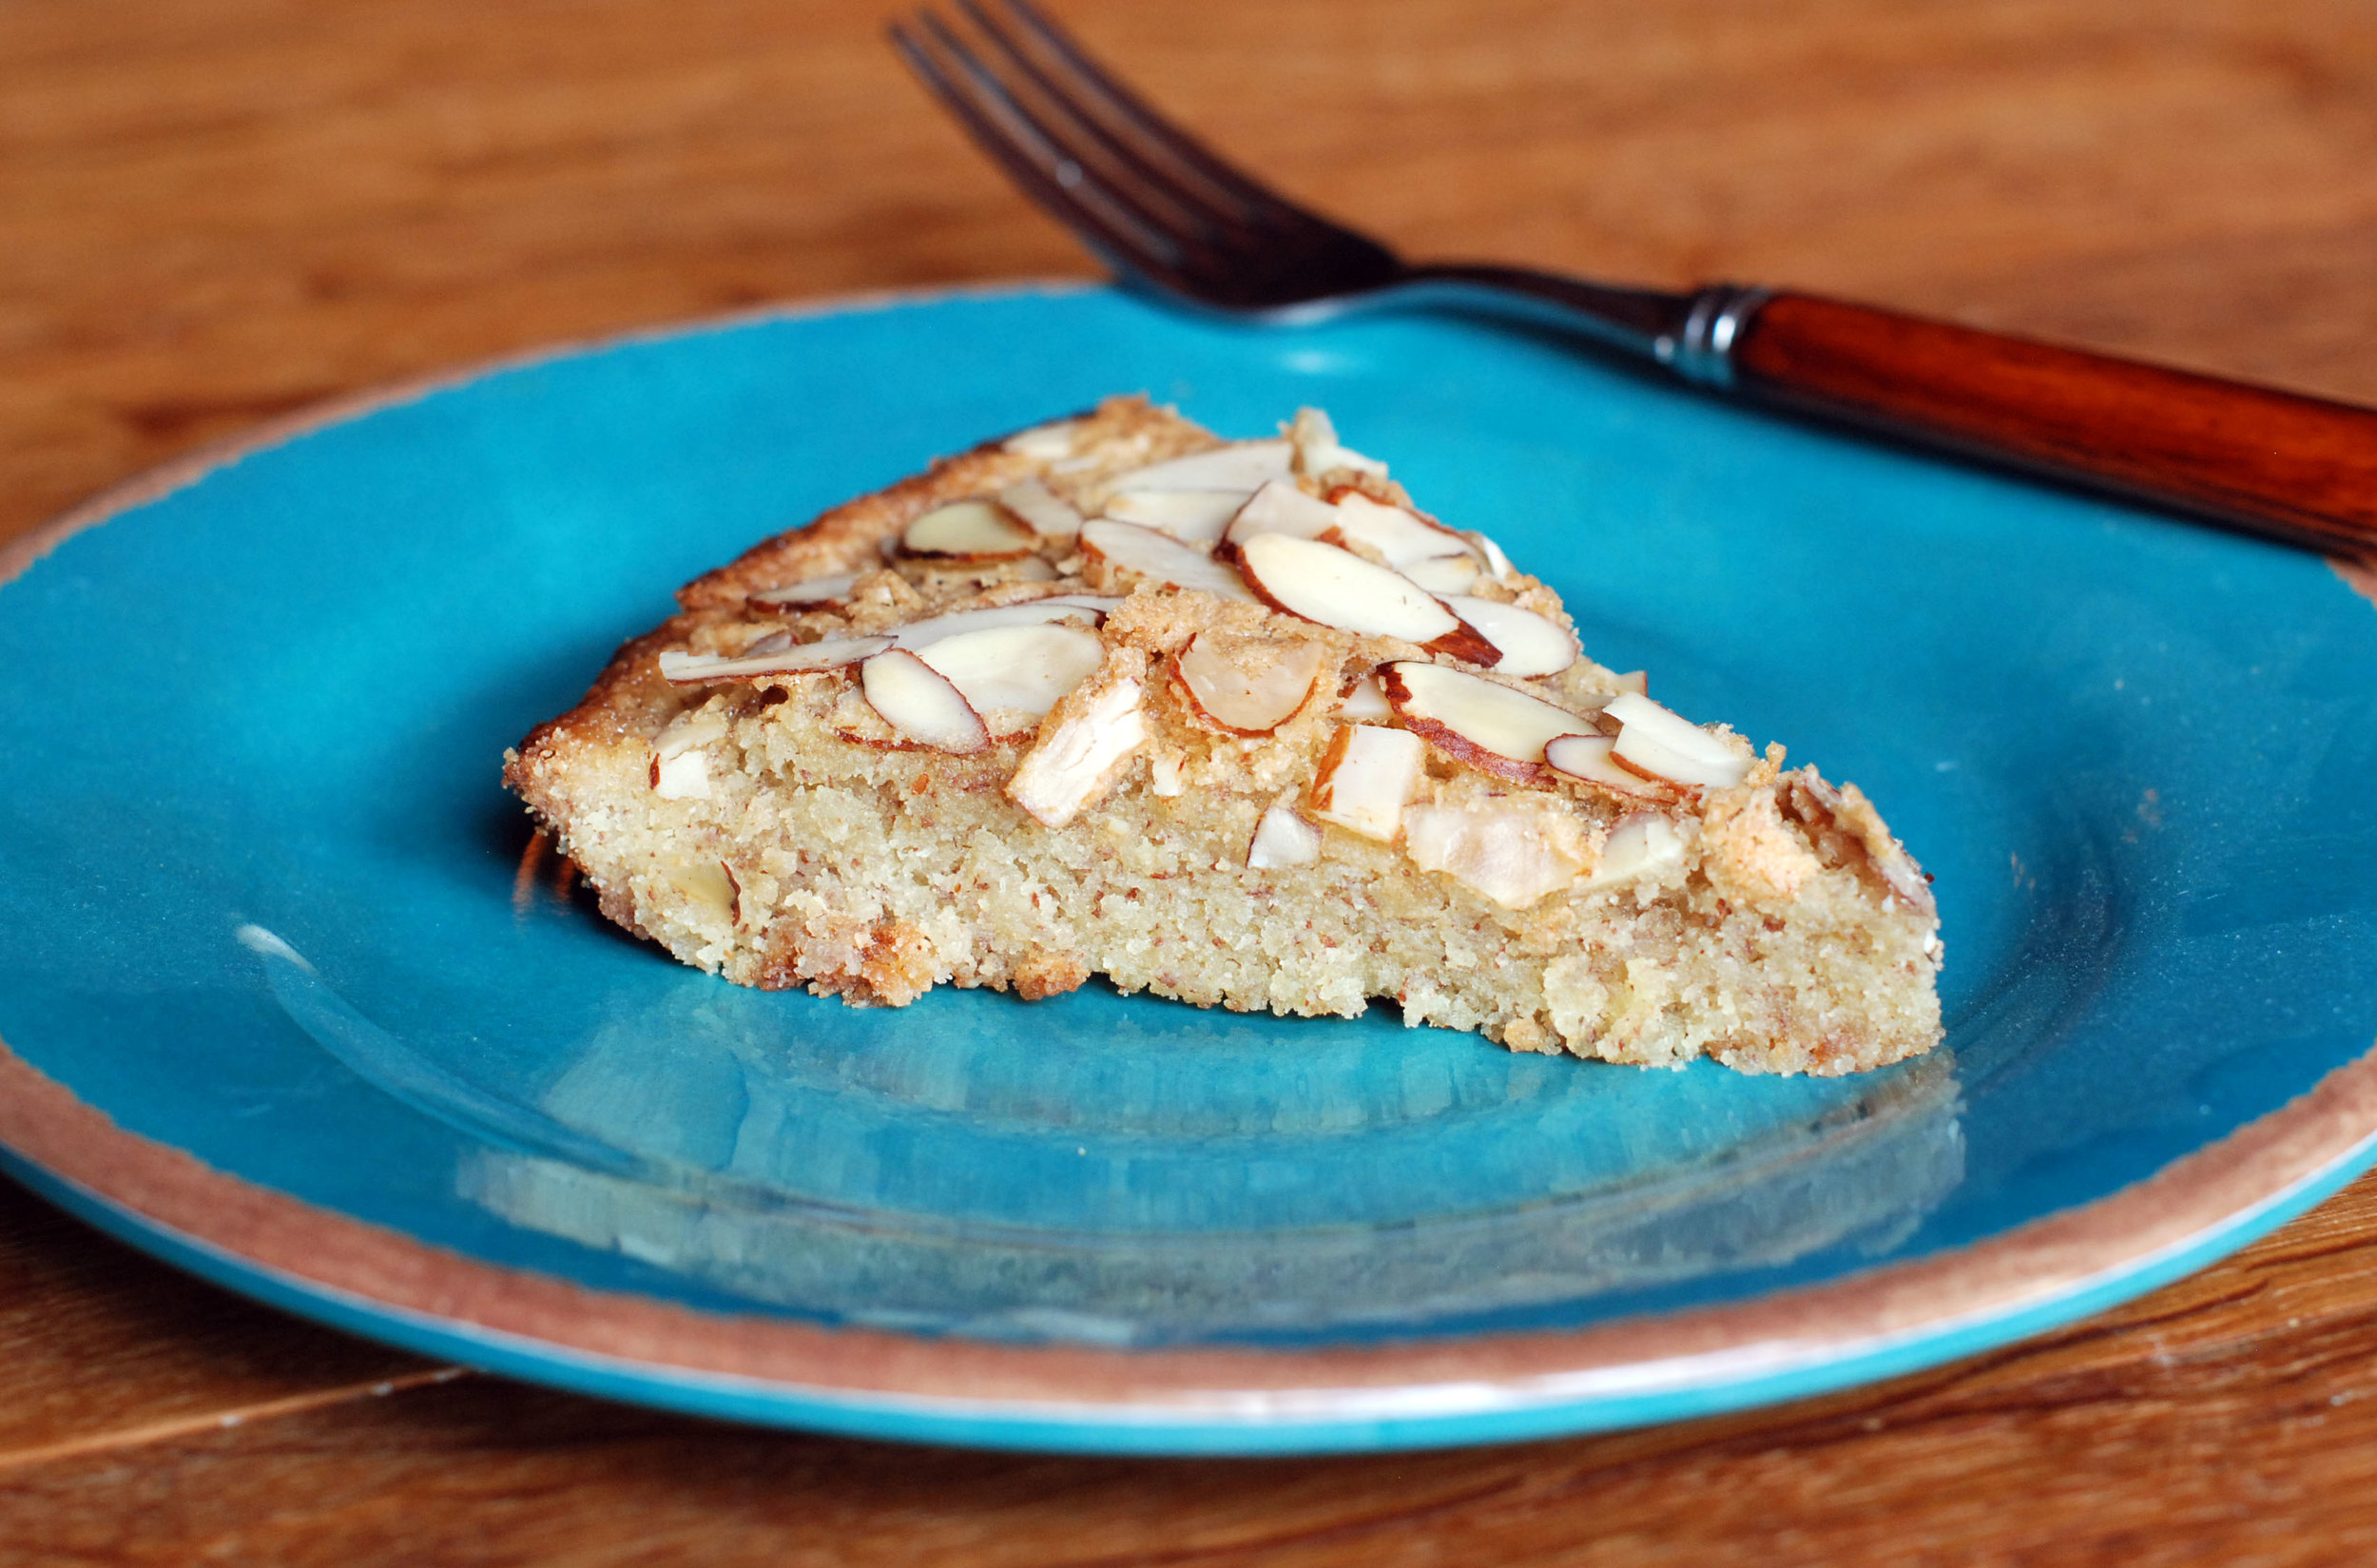 Slice of Almond Cake.jpg